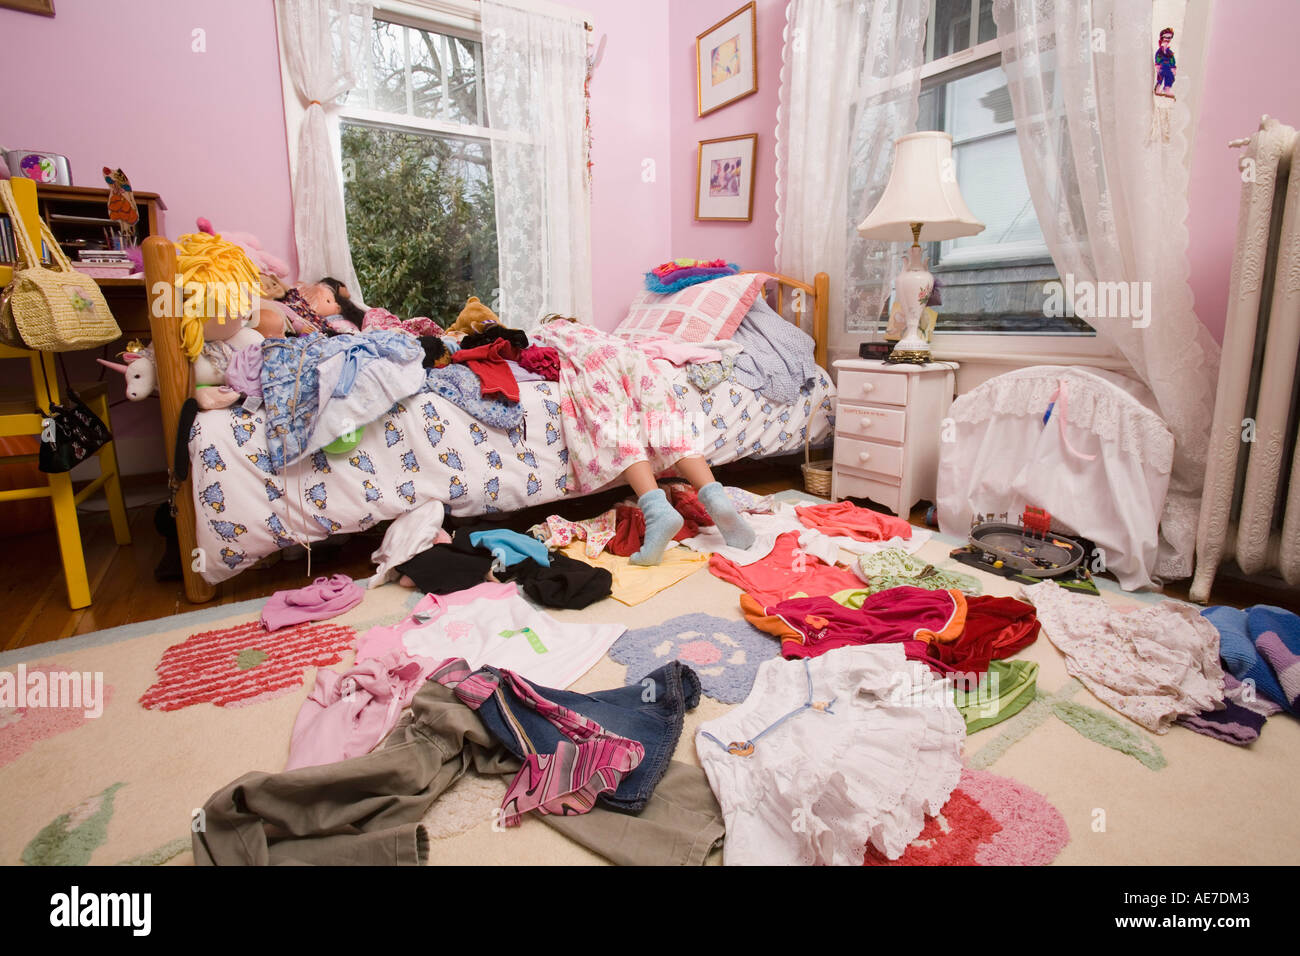 Girl Laying On Bed In Messy Bedroom Stock Photo Alamy